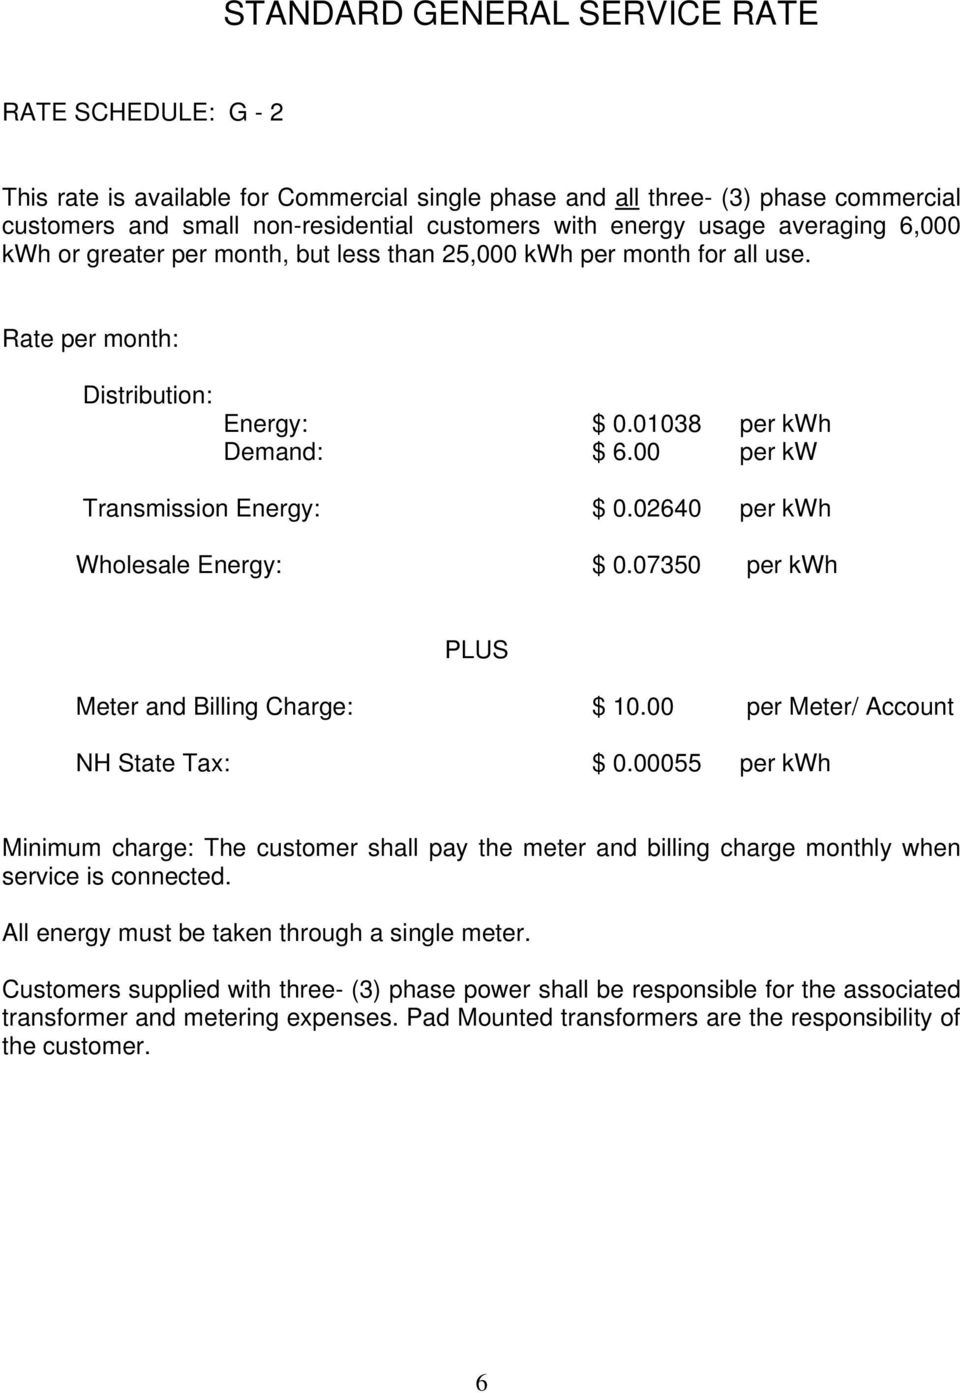 00 per kw Transmission Energy: $ 0.02640 per kwh Wholesale Energy: $ 0.07350 per kwh Meter and Billing Charge: $ 10.